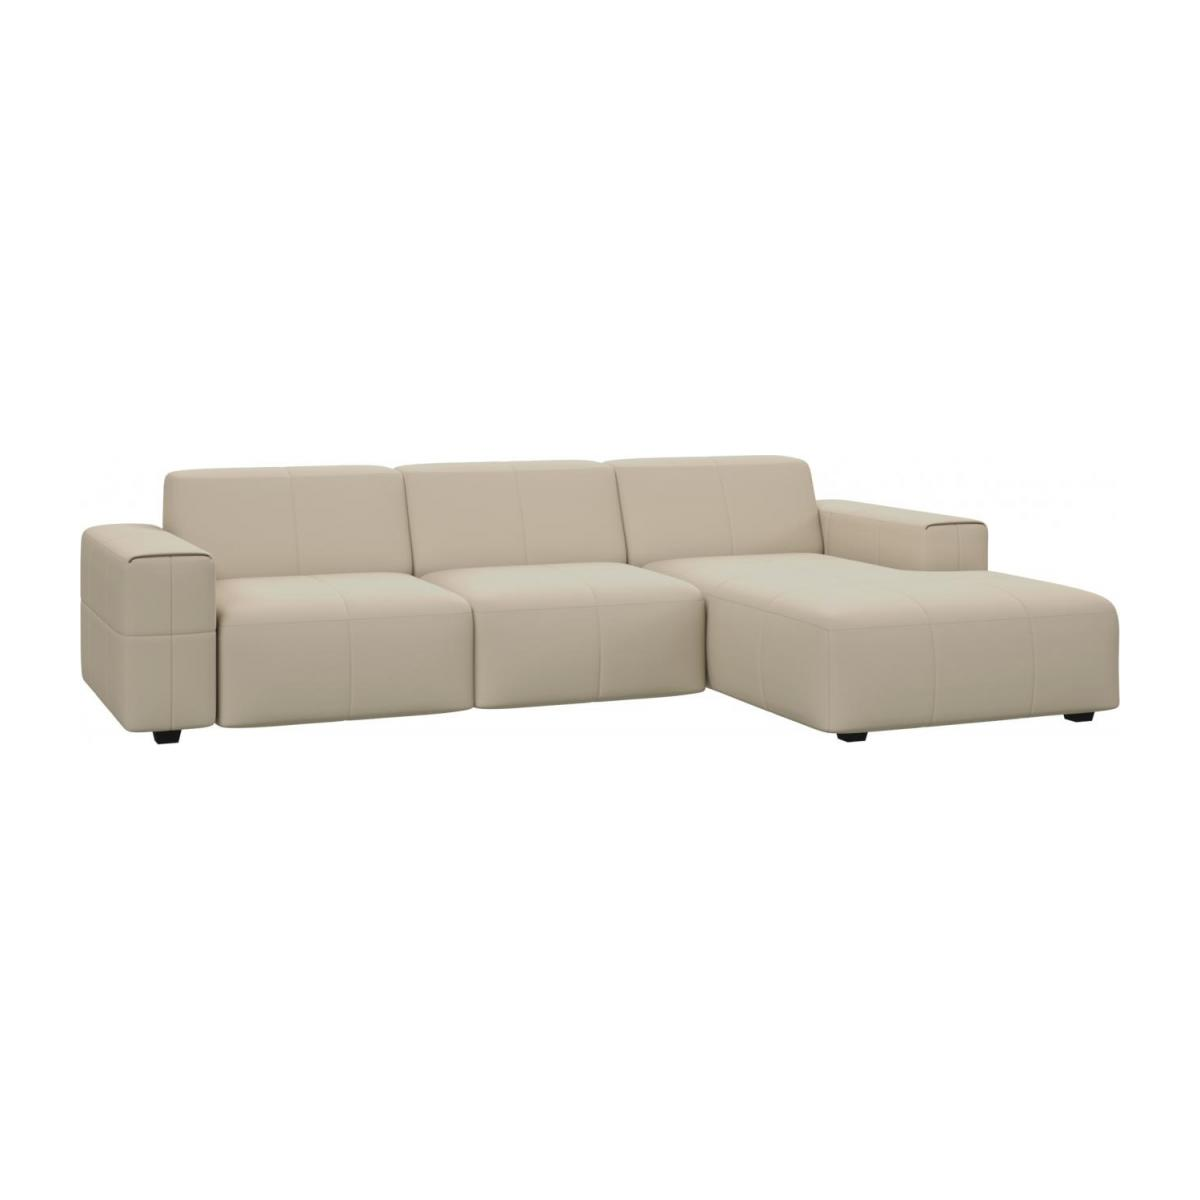 3 seater sofa with chaise longue on the right in Savoy semi-aniline leather, off white n°1